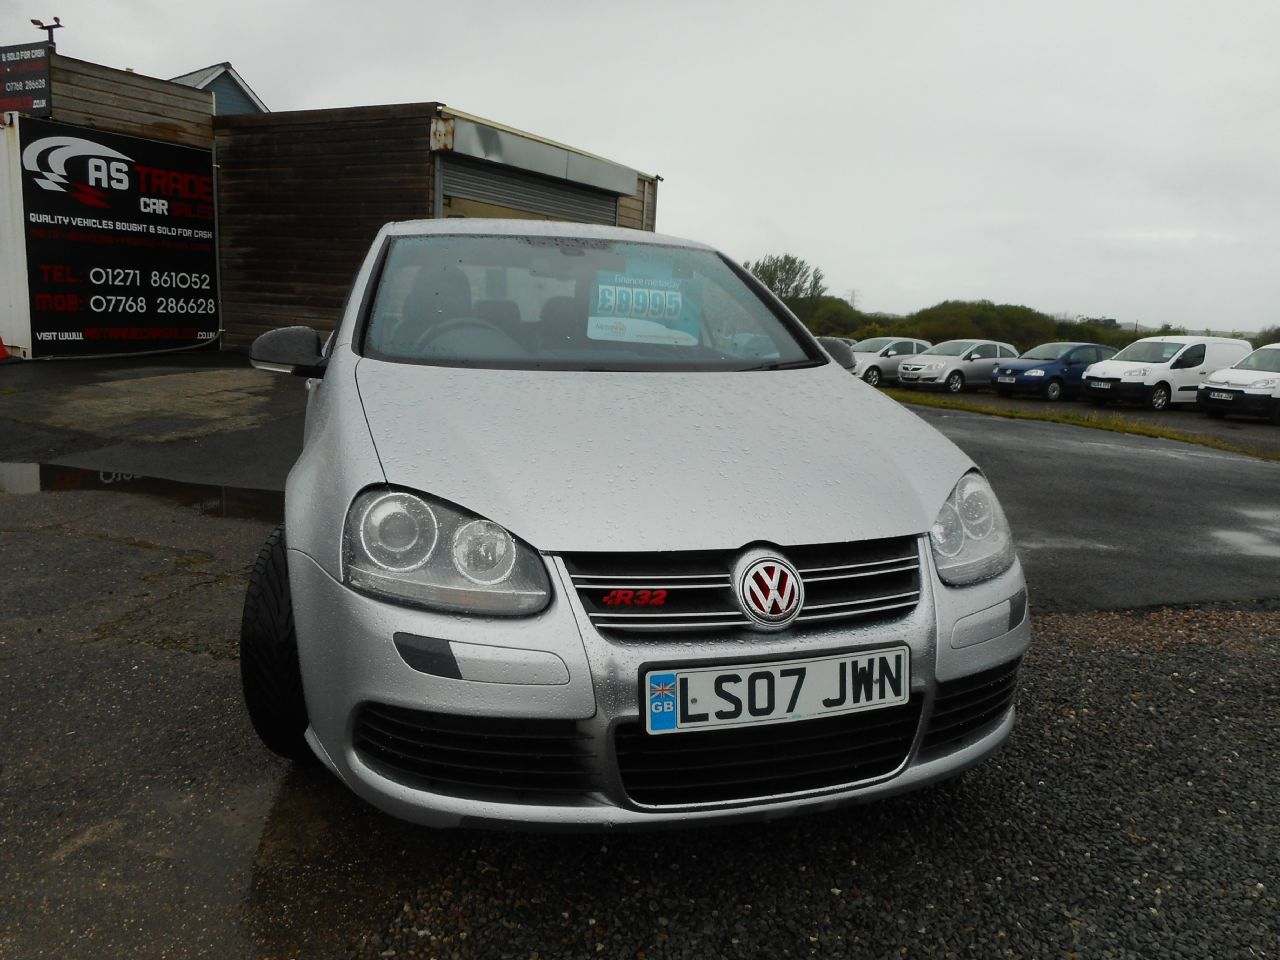 VOLKSWAGENGOLF R32 S-A 3.2 Litre5 DOOR HATCHBACK for sale